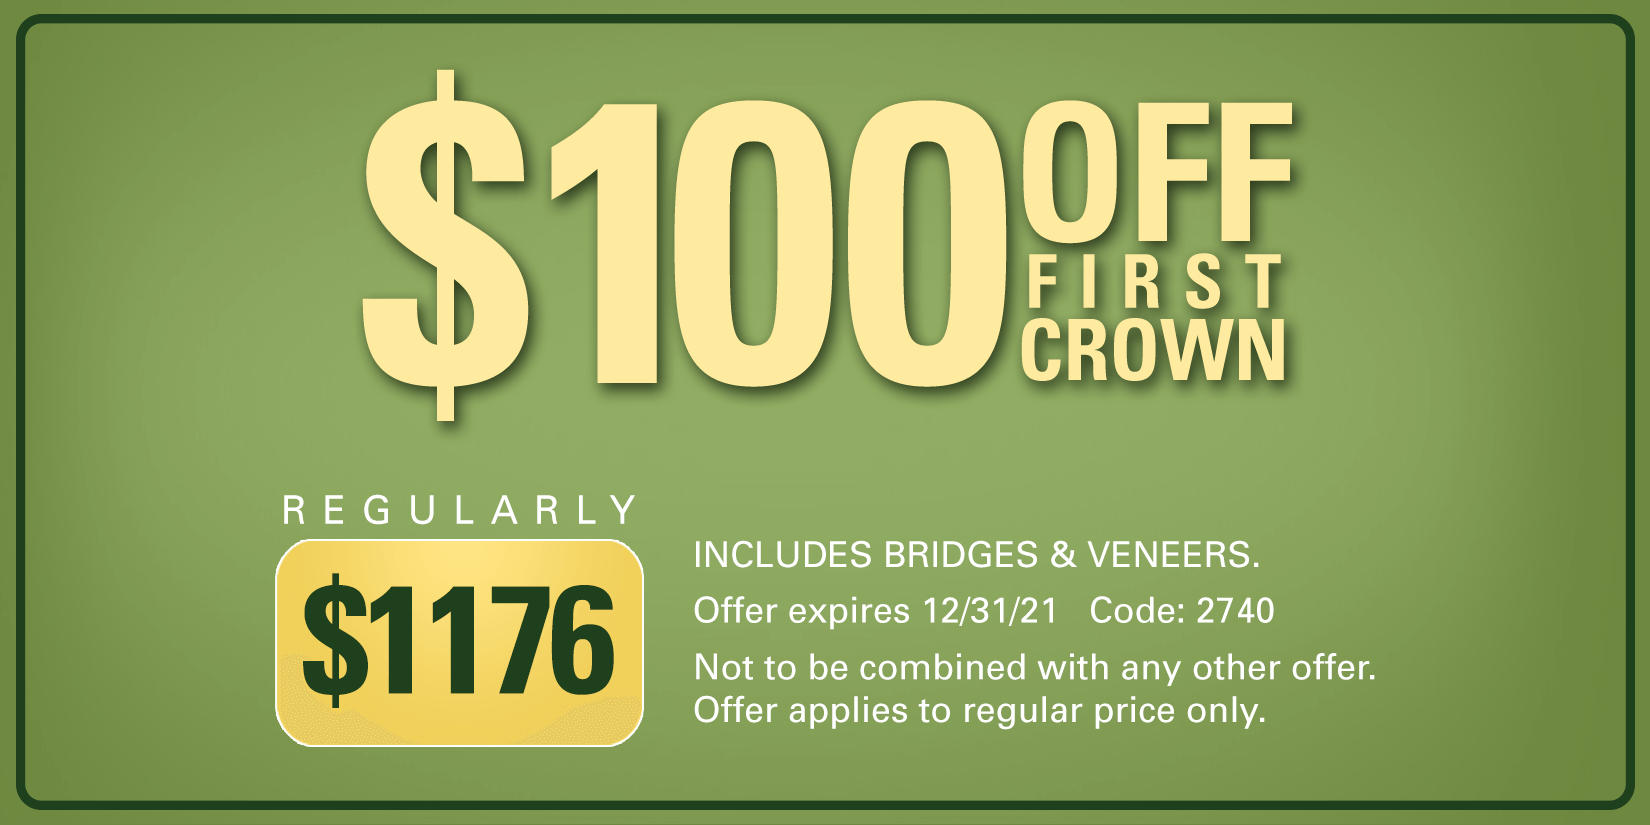 $100 off first crown